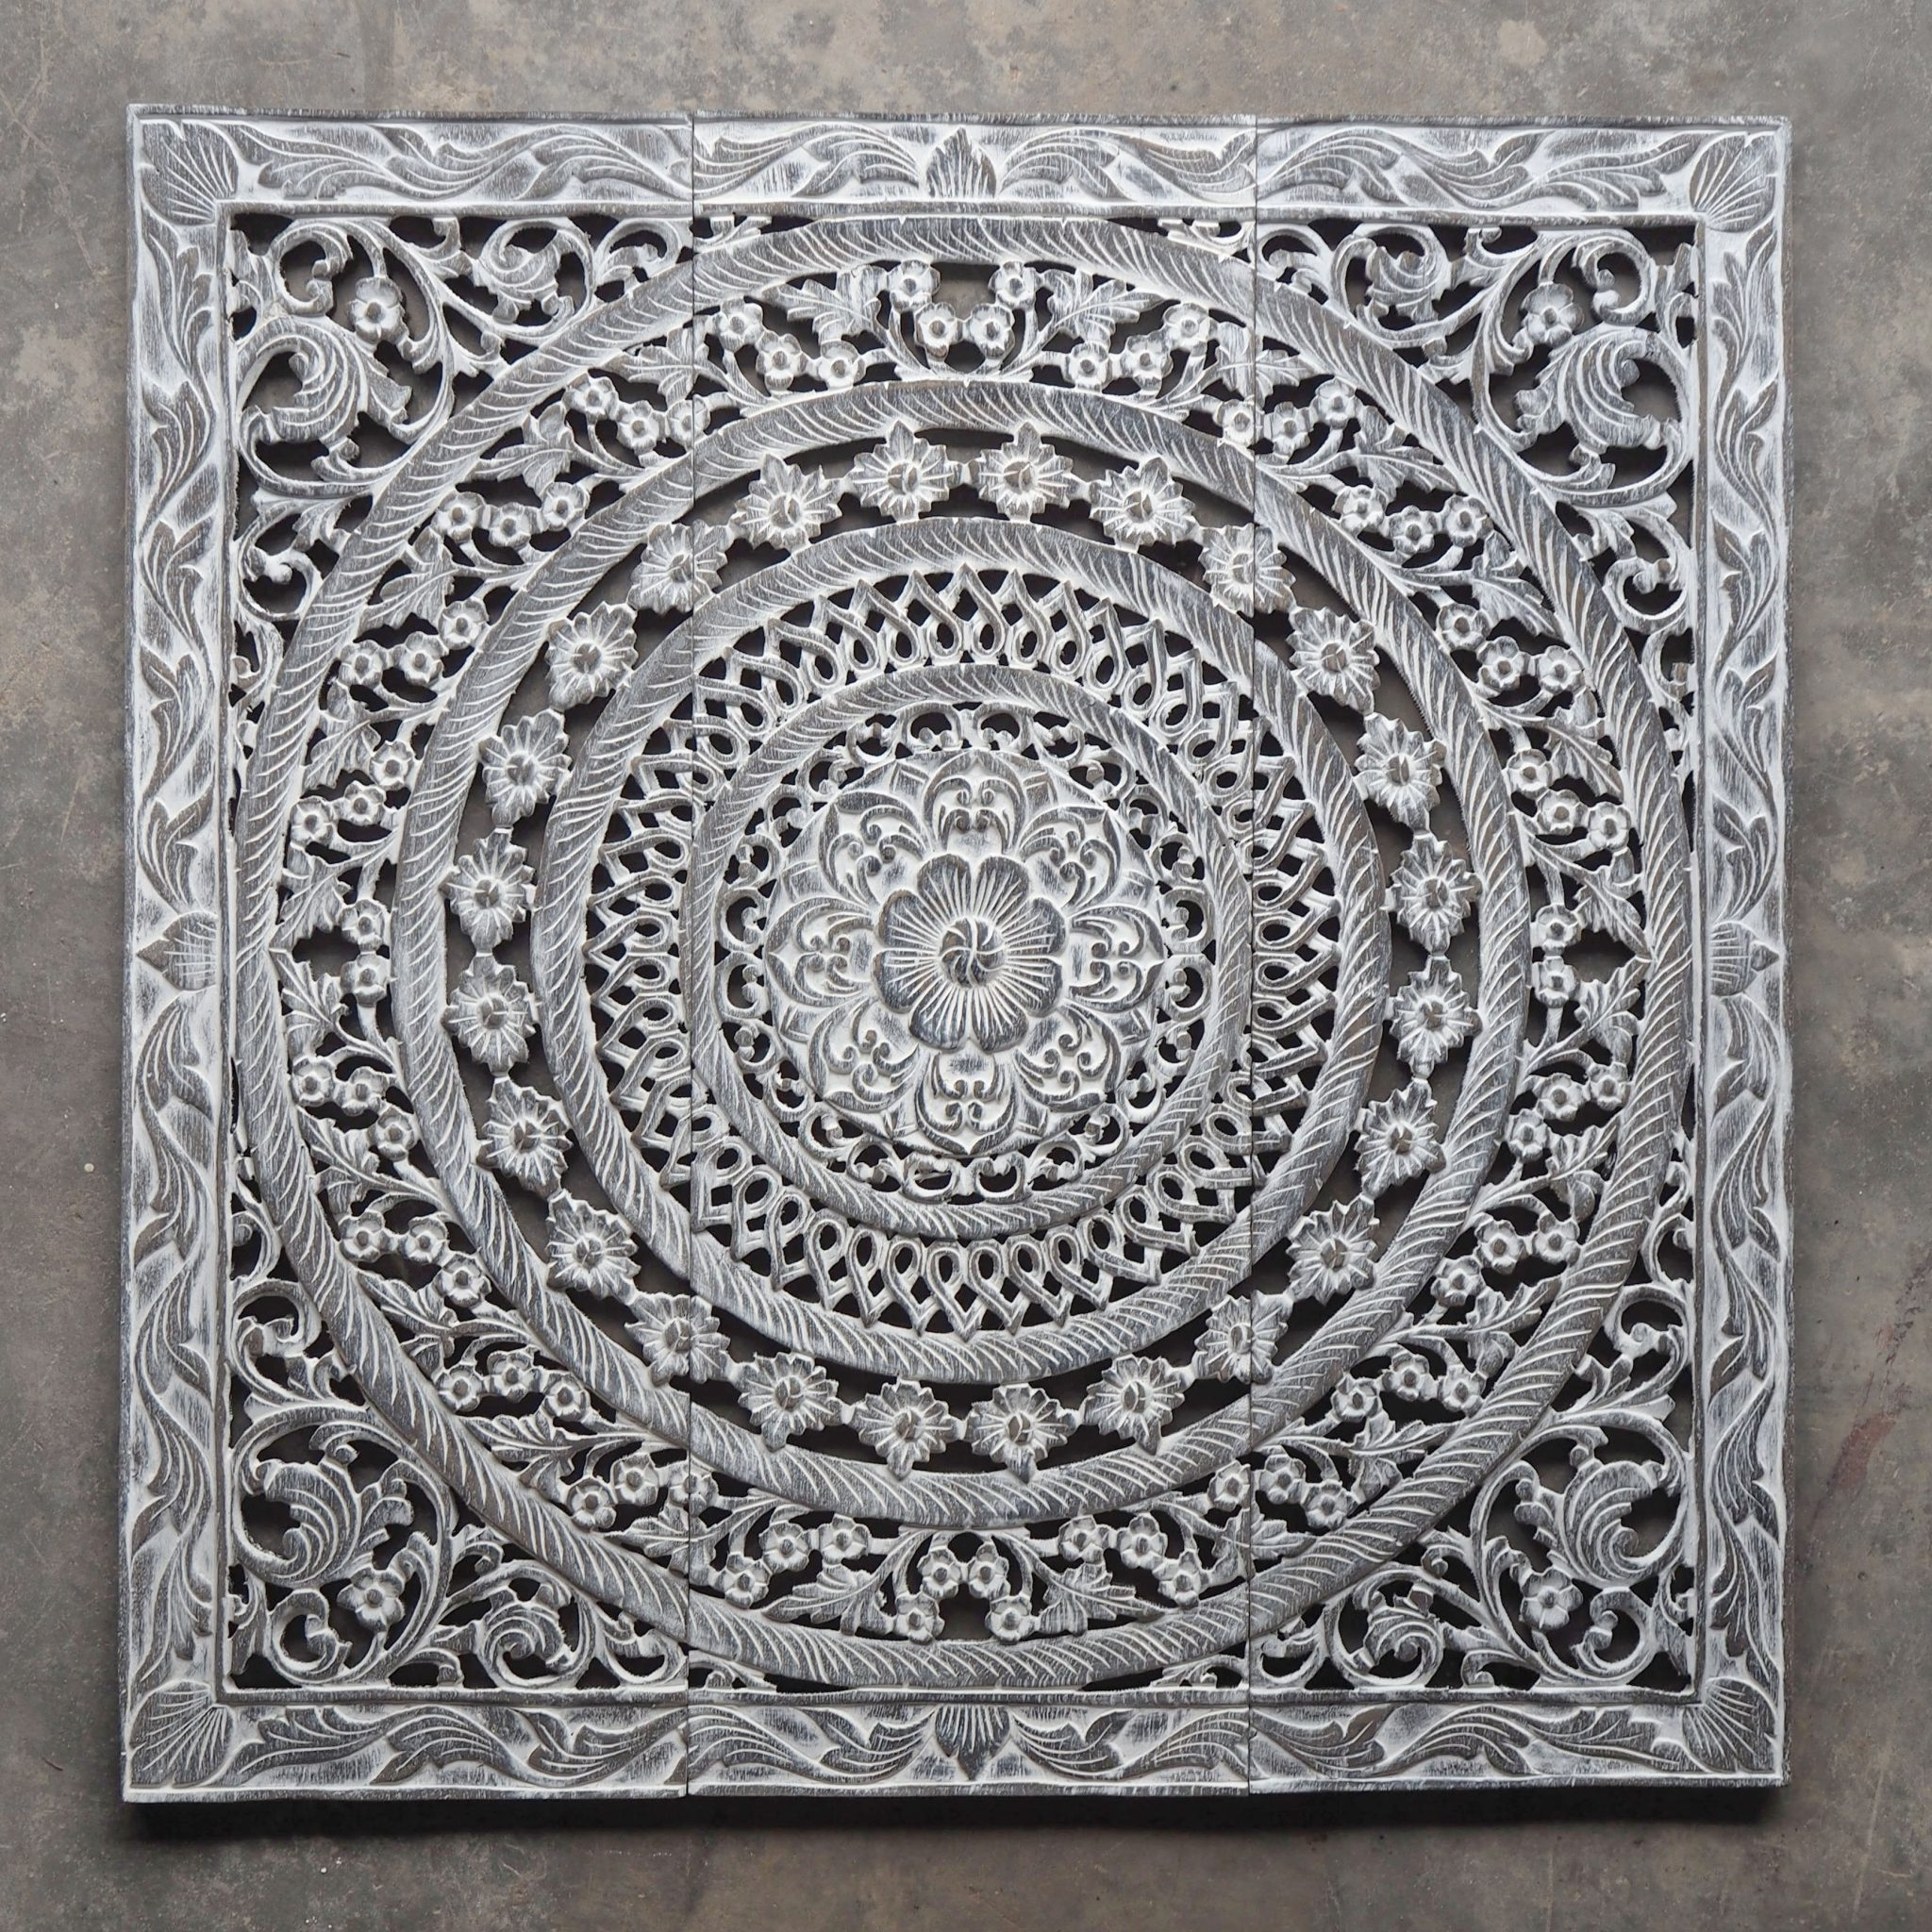 Wood Carved Wall Art Pertaining To Recent Buy Moroccan Decent Wood Carving Wall Art Hanging Online (View 12 of 15)